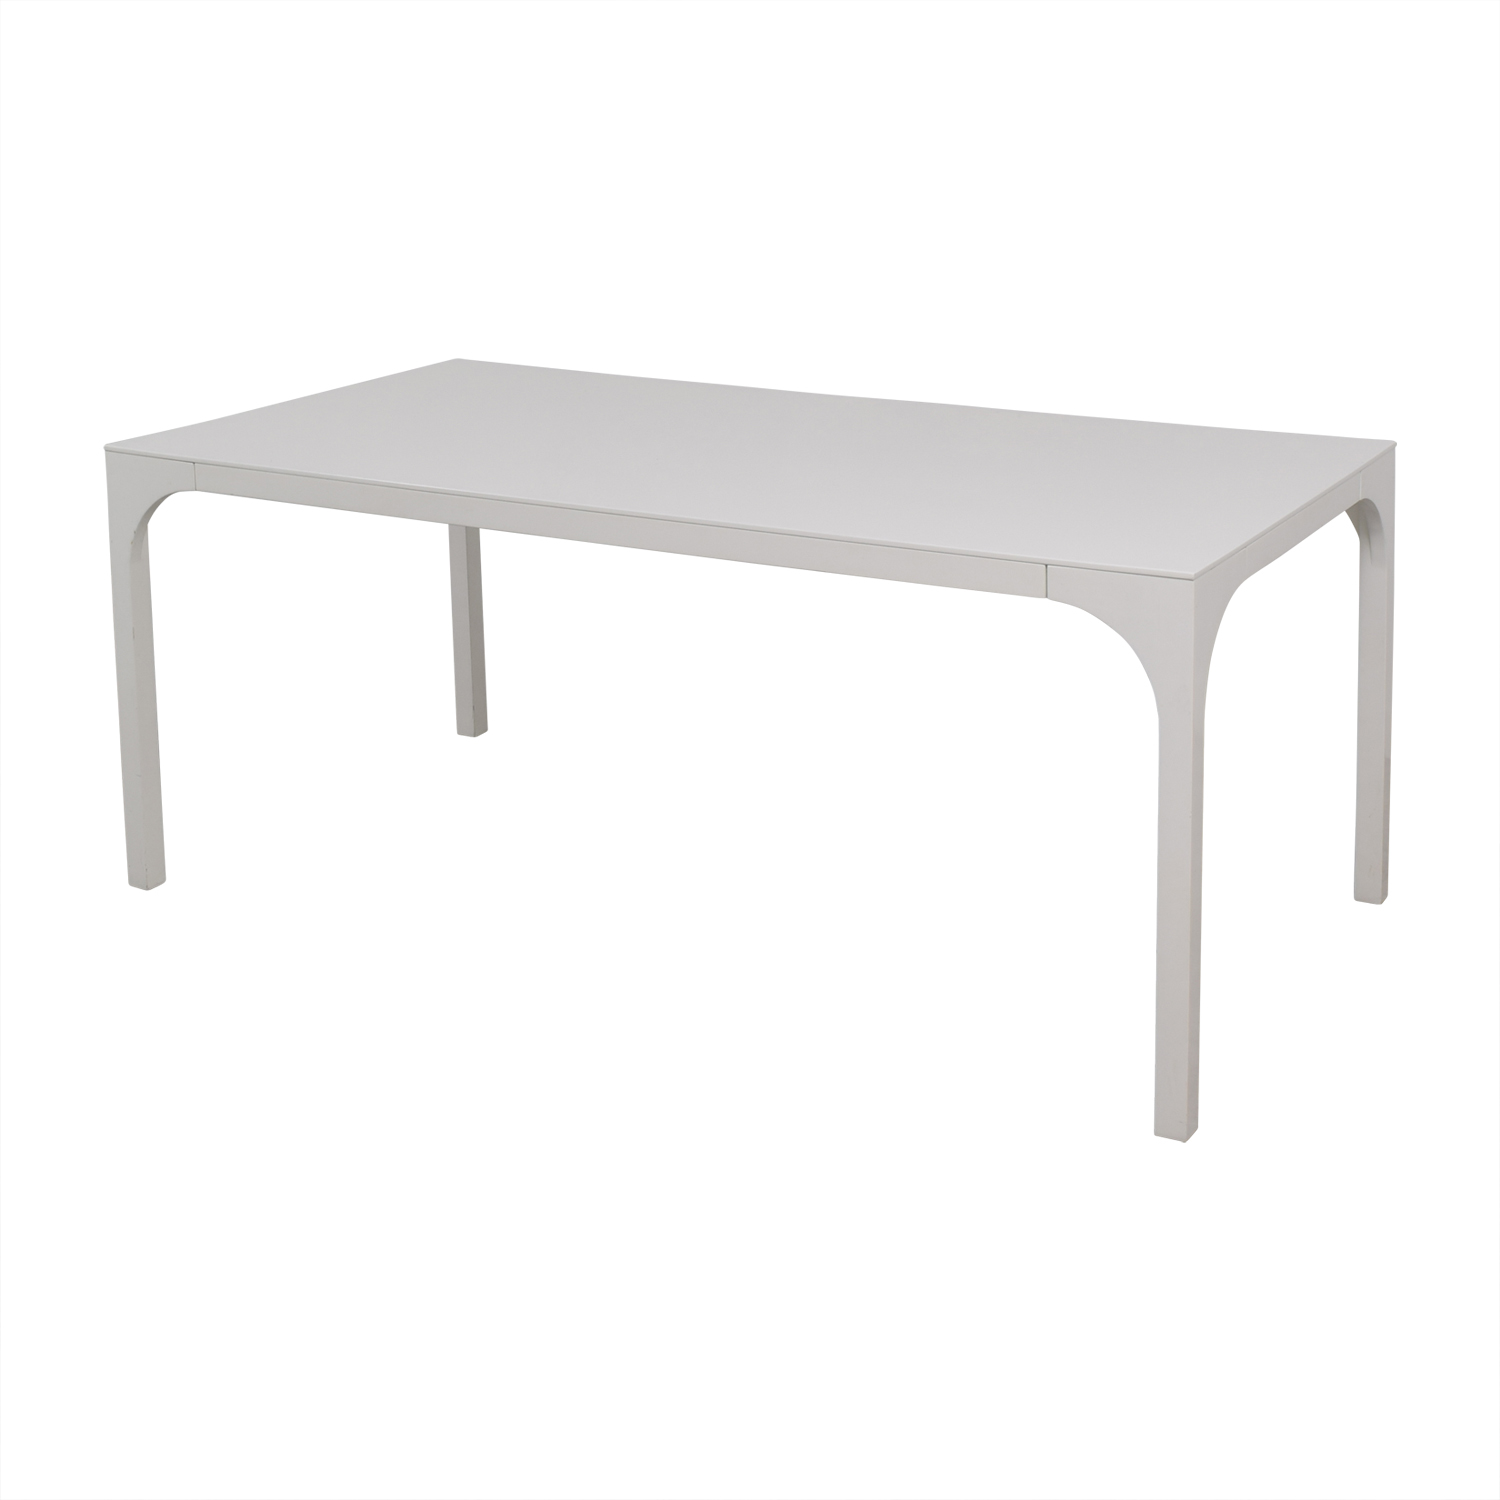 White Rectangular Table discount